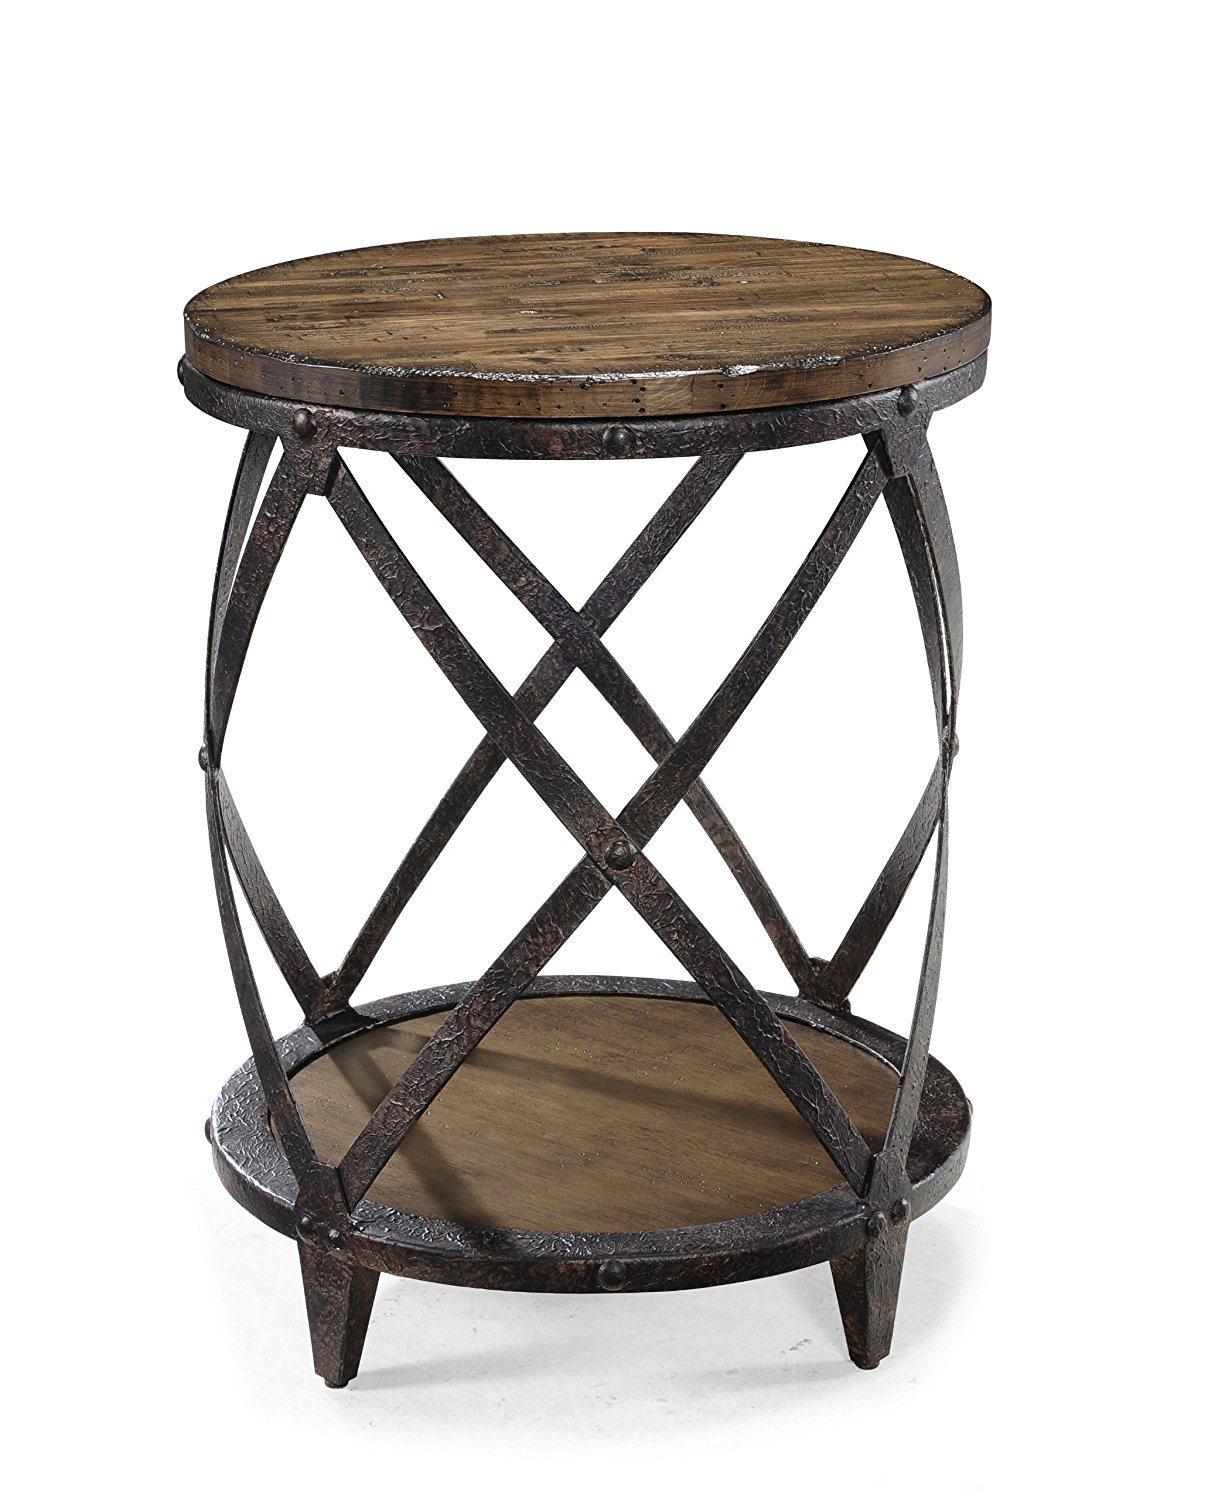 remarkable small round wood accent table square oak tripod twist pressed avani drum below bengal unfinished twisted lani solid tables manor natural target mango and metal rustic